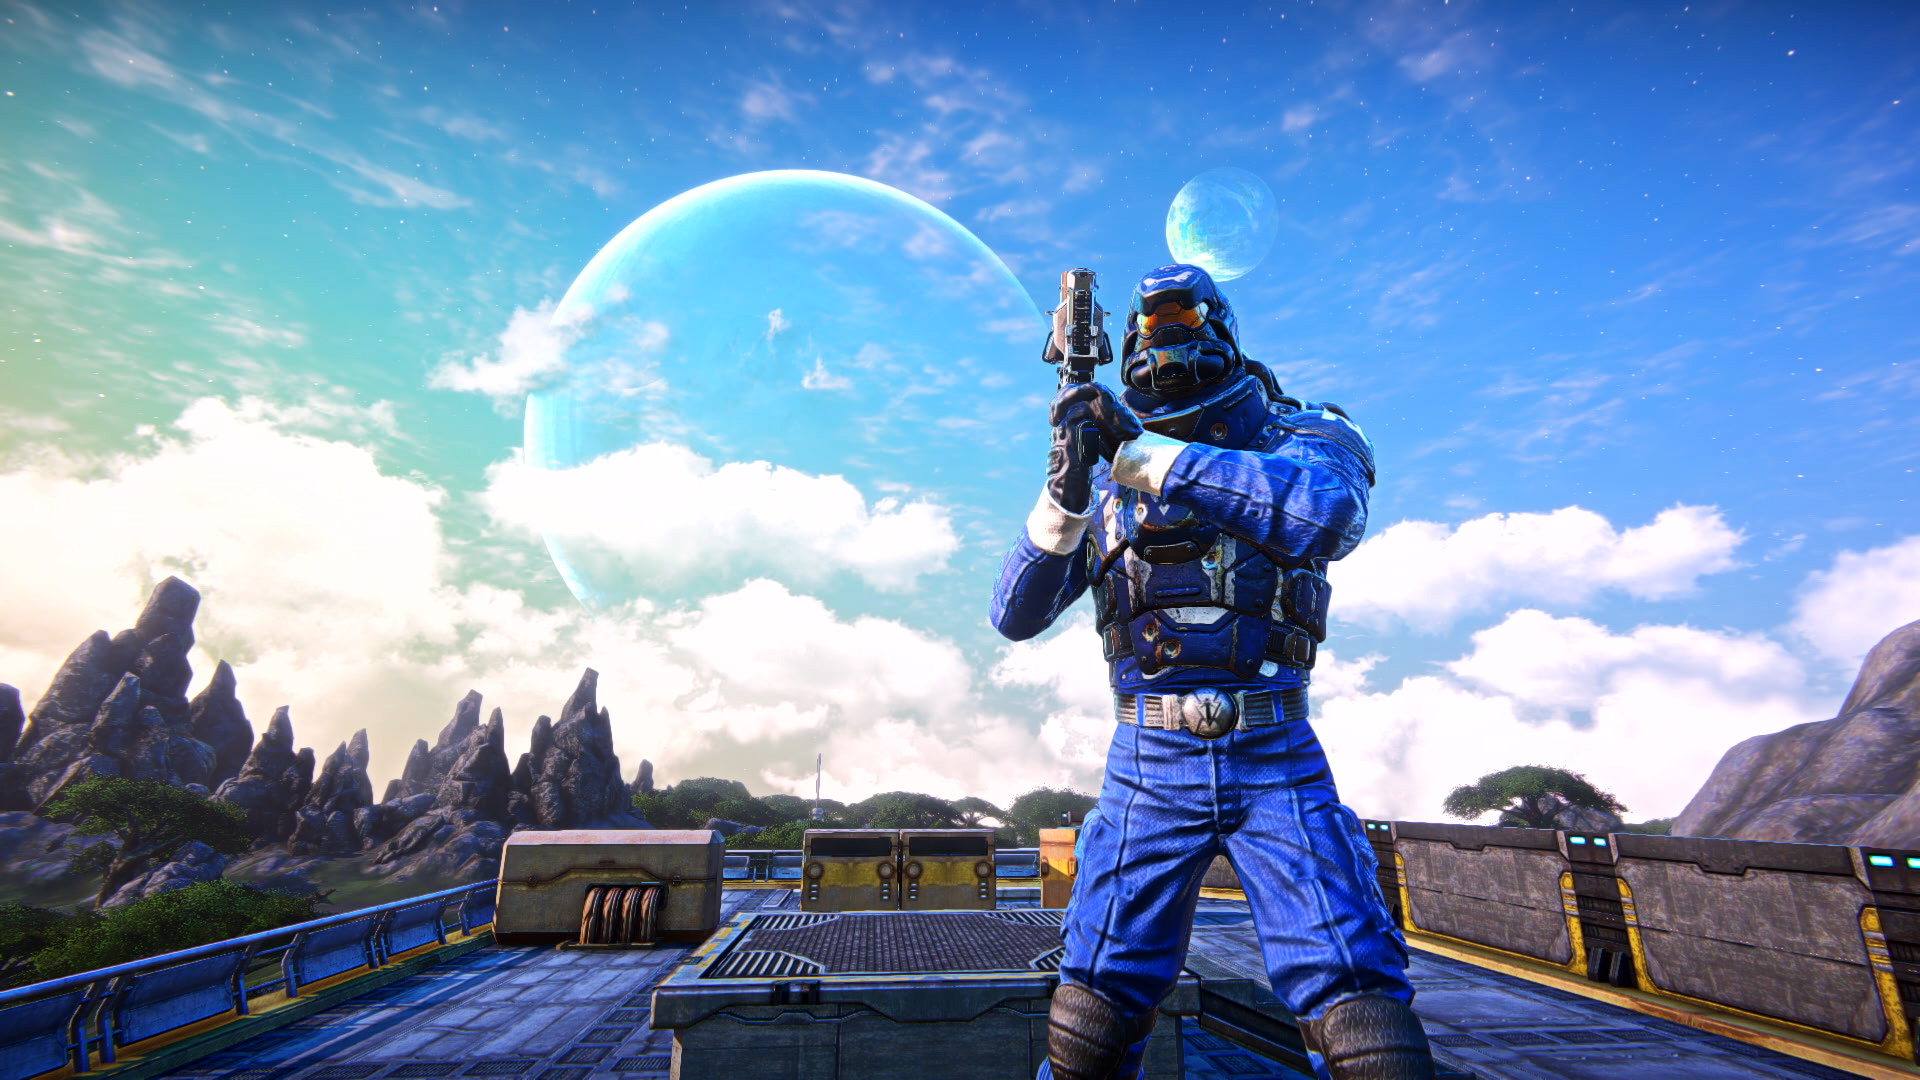 PlanetSide Arena's weapons should feel familiar to PlanetSide 2 players